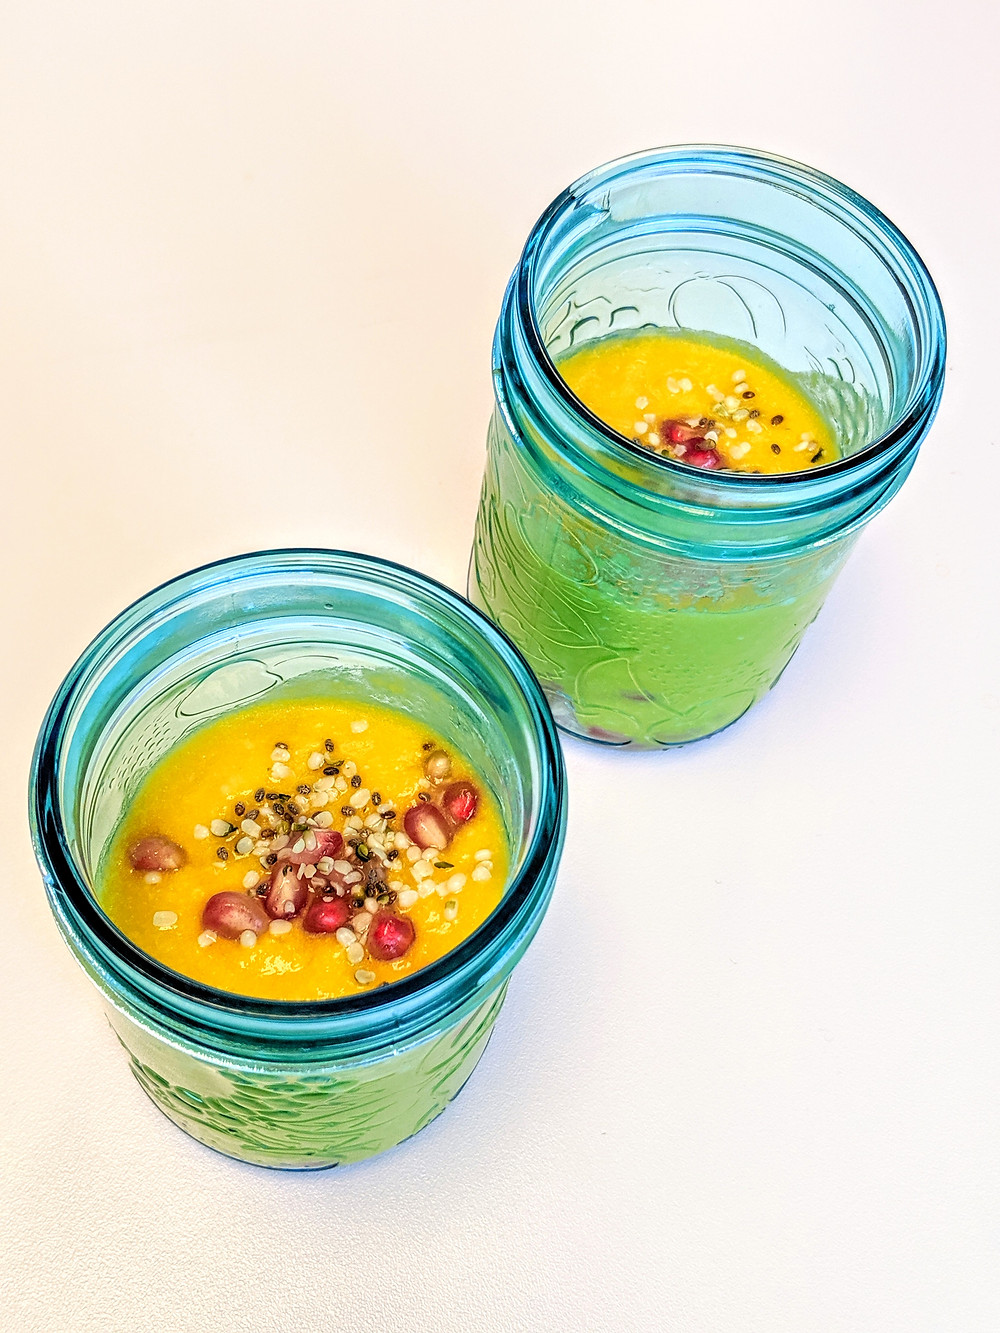 Mango Coconut Pudding, Gluten Free, Dairy Free, Organic, Homemade, scratch cooking, dessert, healthy